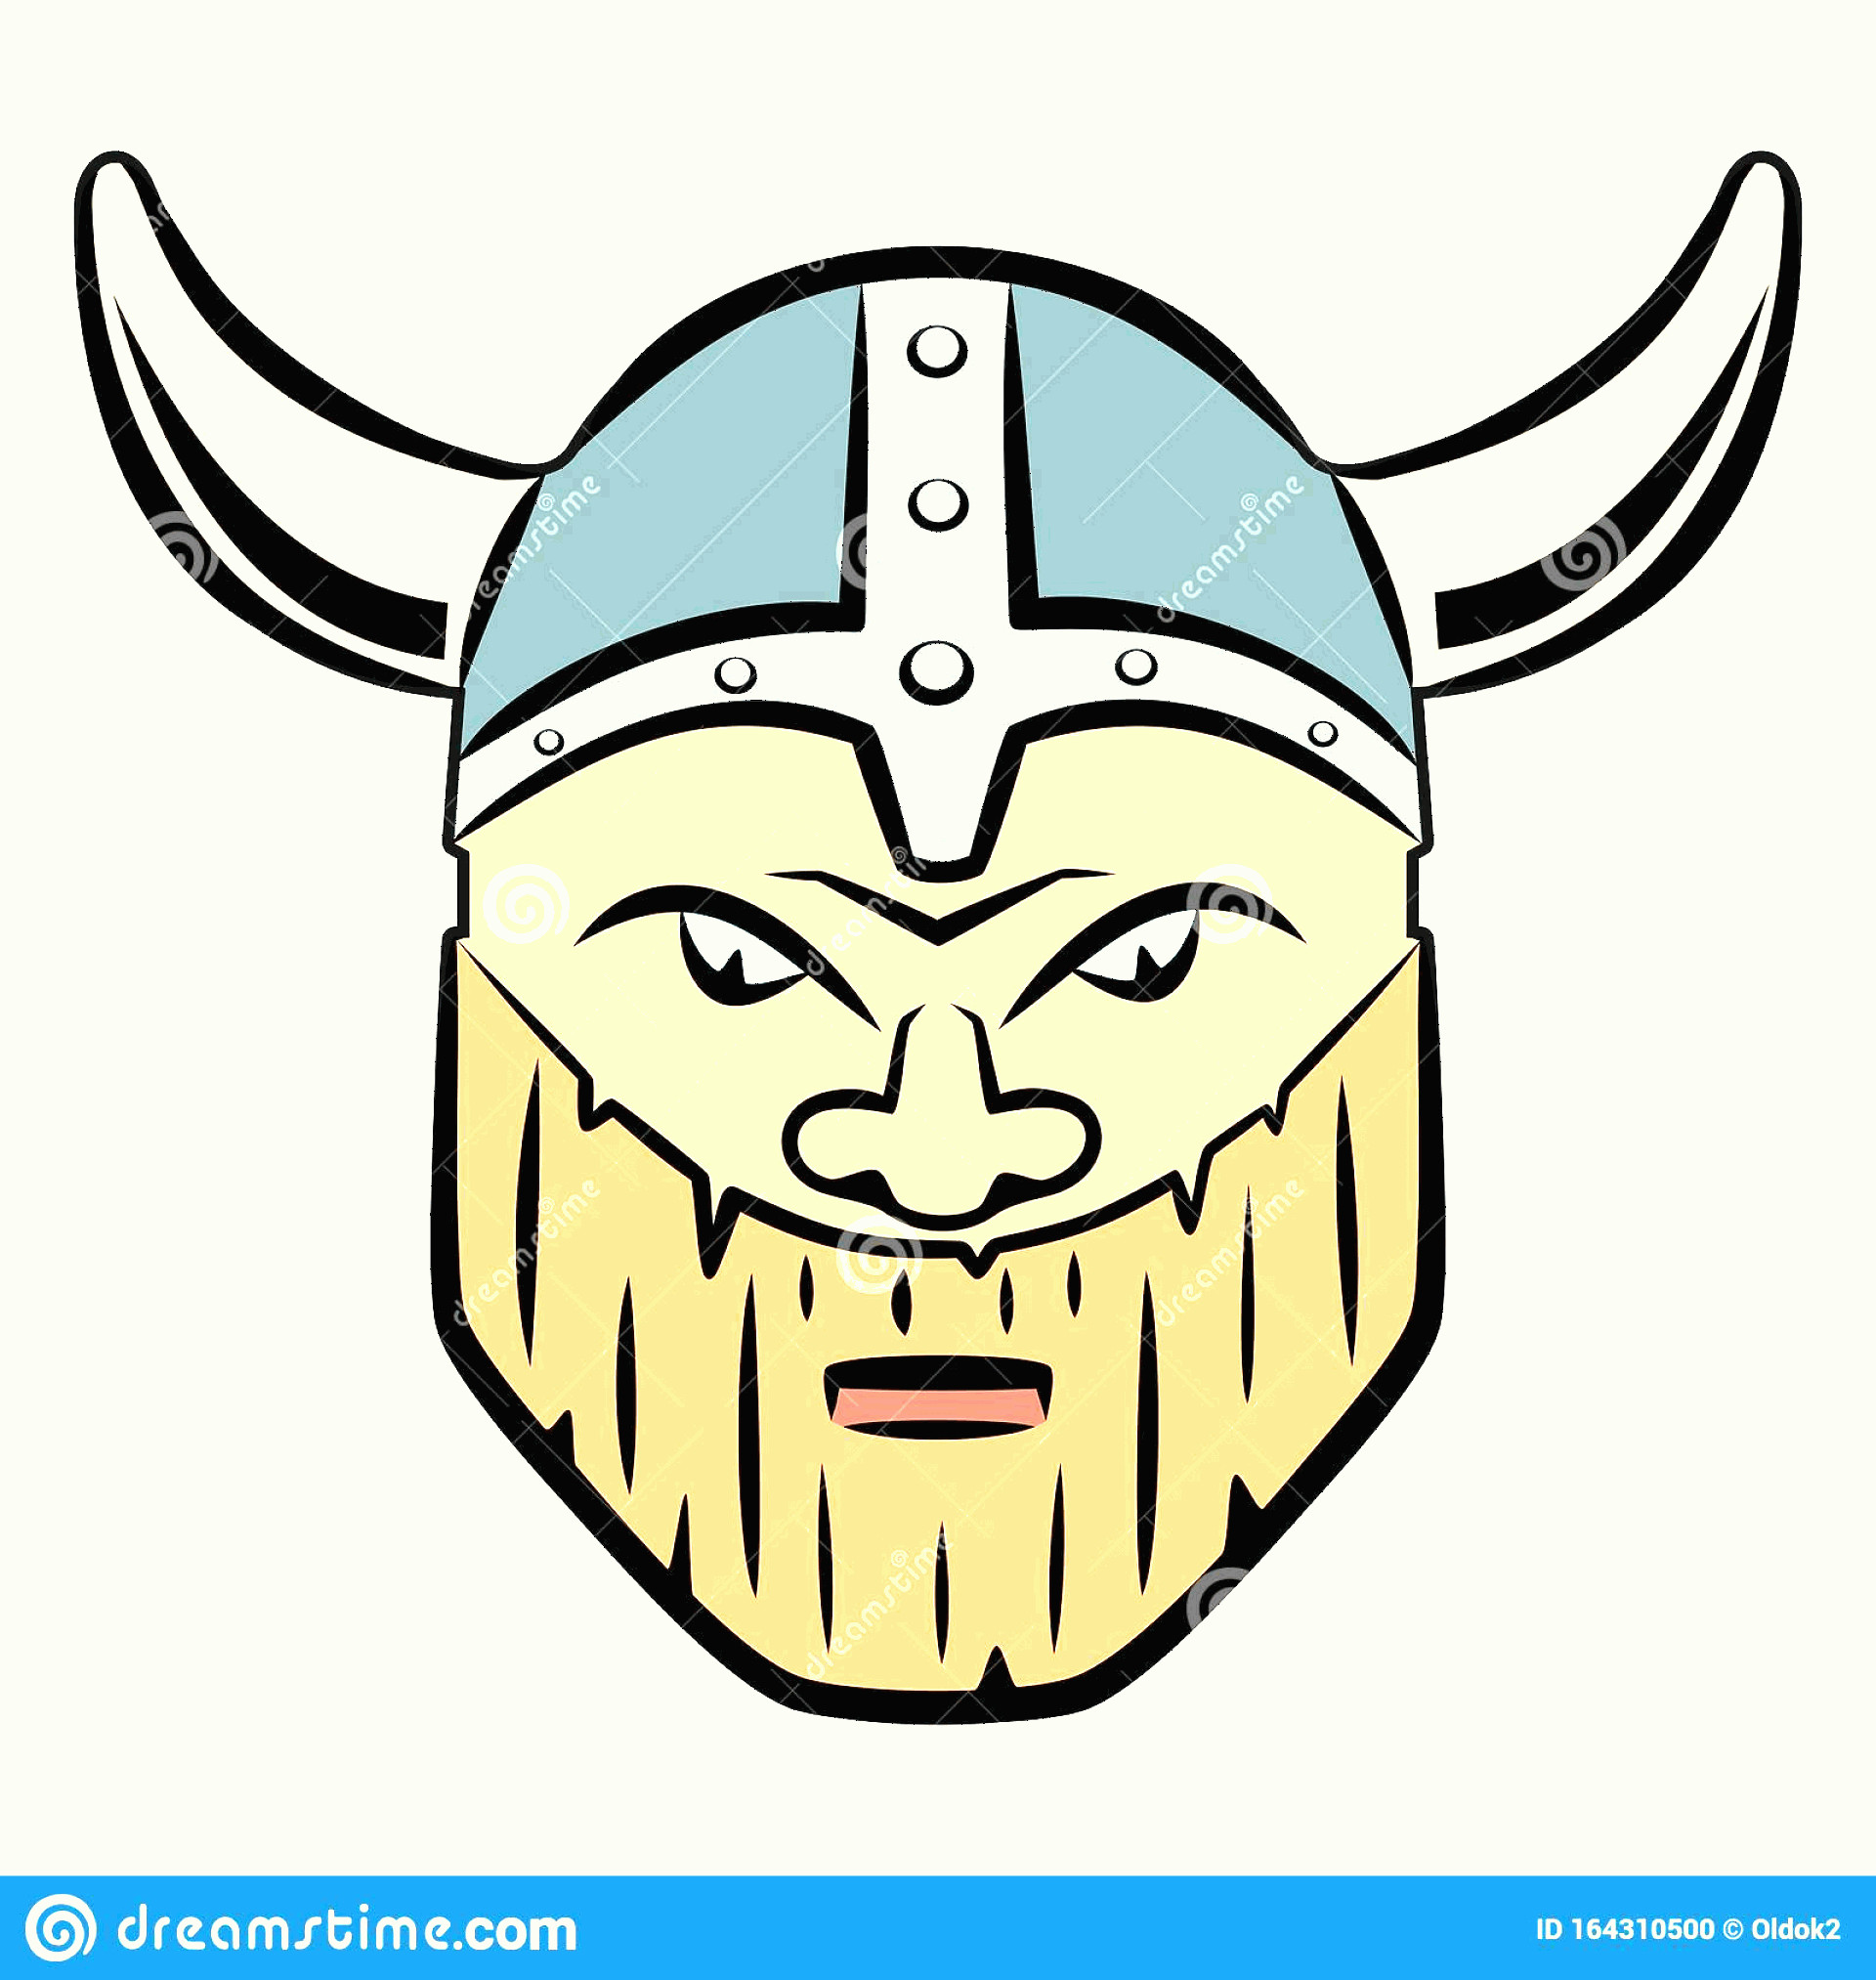 Viking Head Vector: Isolated Illustration Viking Head Vector Draw Colored Drawing White Background Image